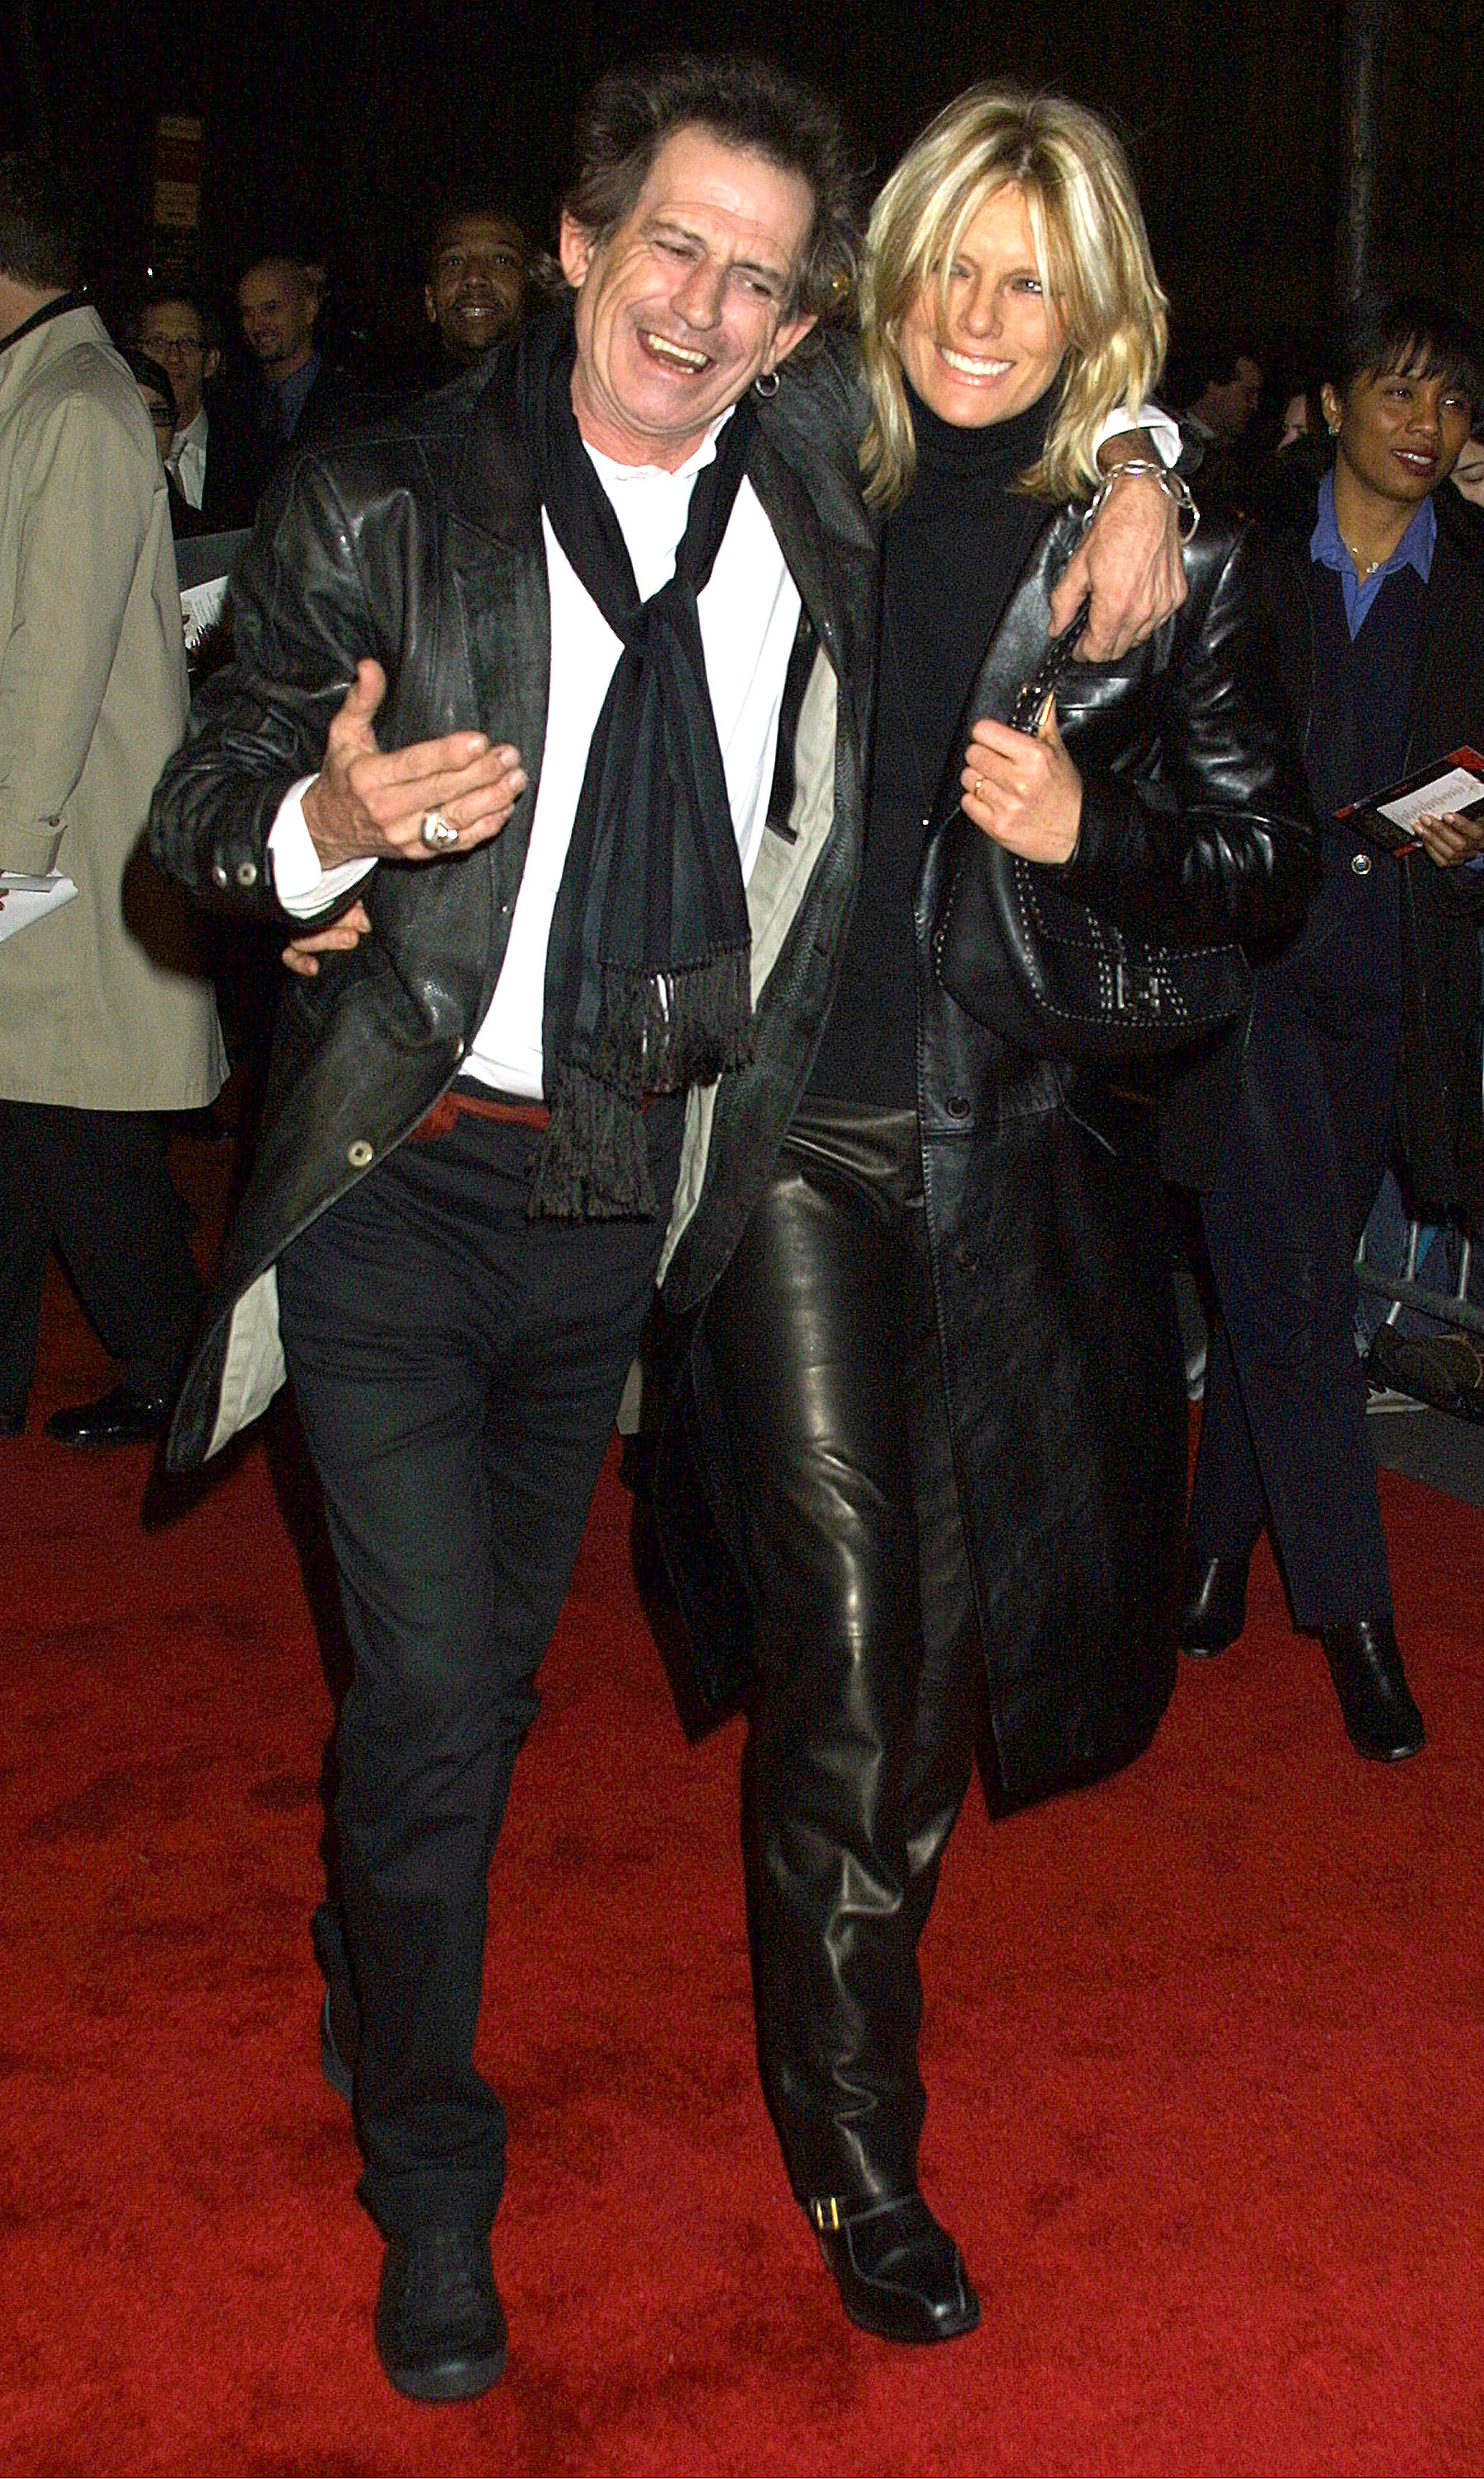 """Guitarist Keith Richards and his wife Patti Hansen attend the premiere of """"Gosford Park"""" December 3, 2001 at the Ziefeld Theatre in New York City. (Photo by George De Sota/Getty Images)"""